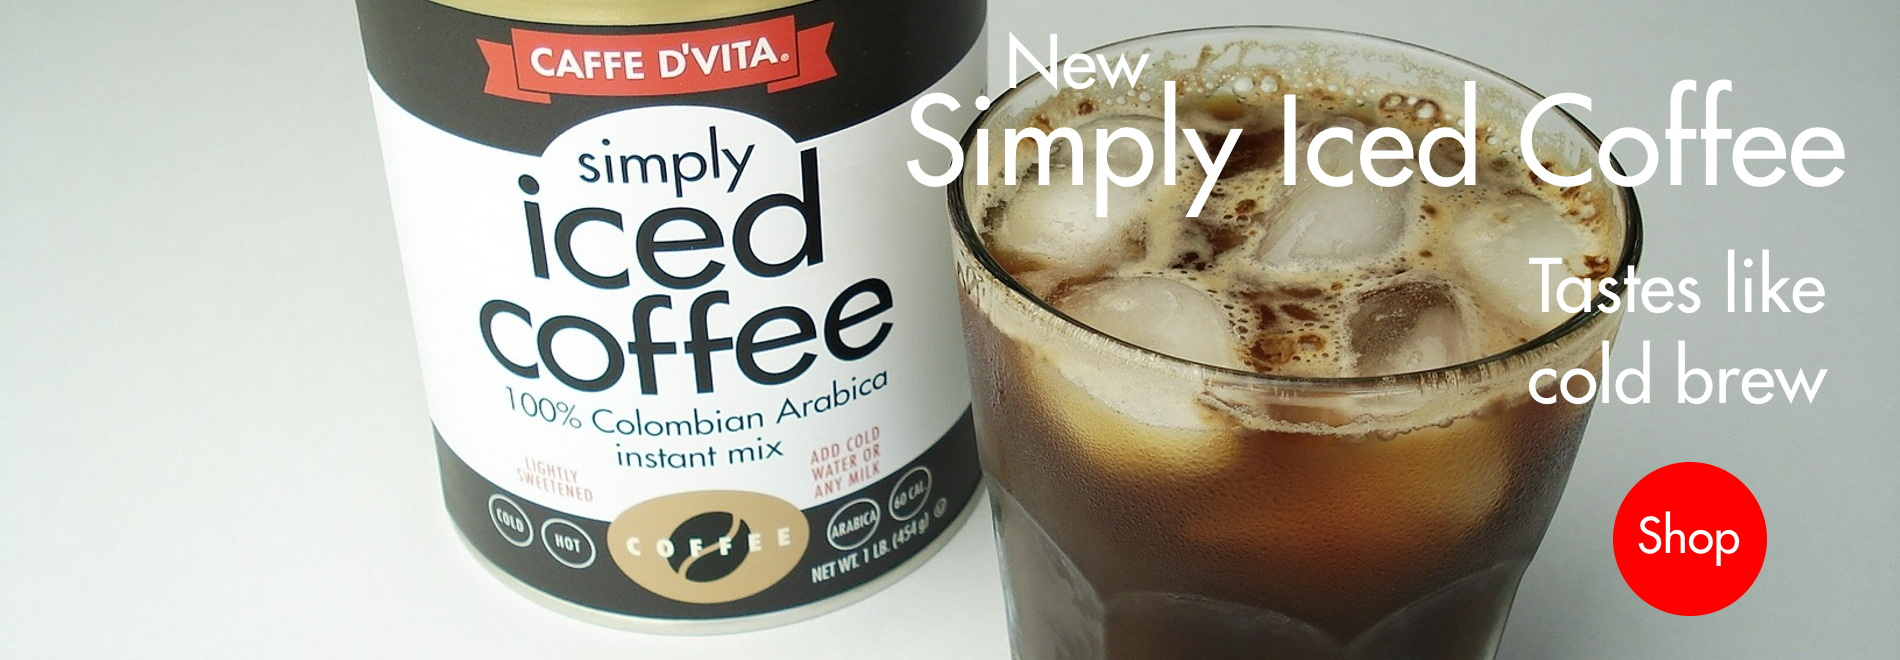 Home page banner for Simply Iced Coffee